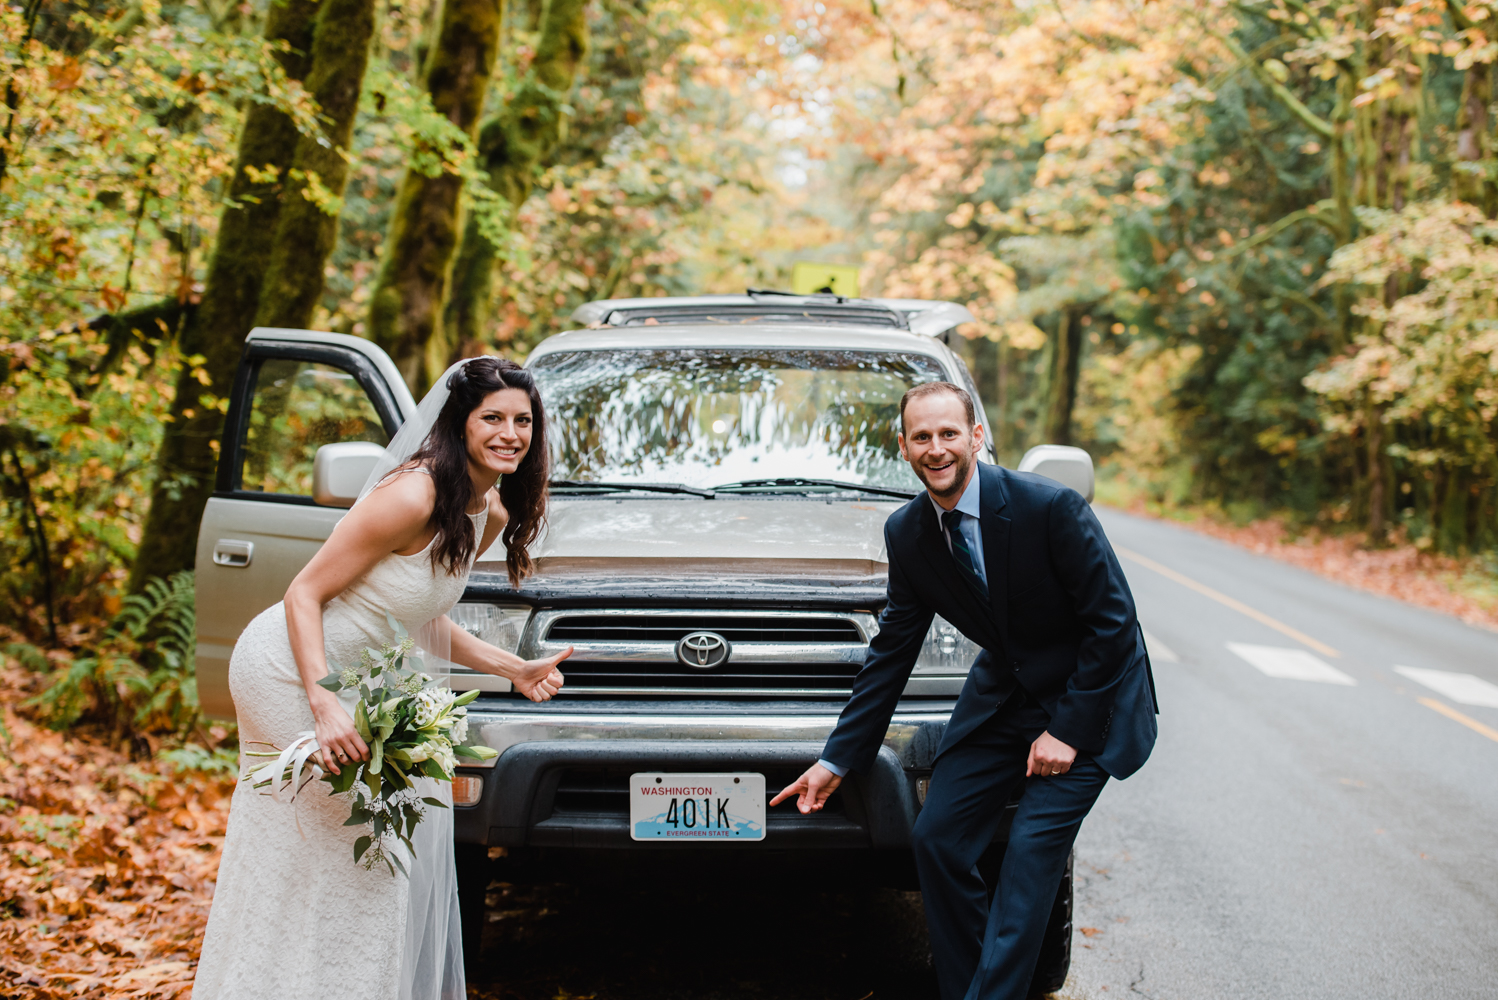 Squamish Wedding Photographer81.jpg